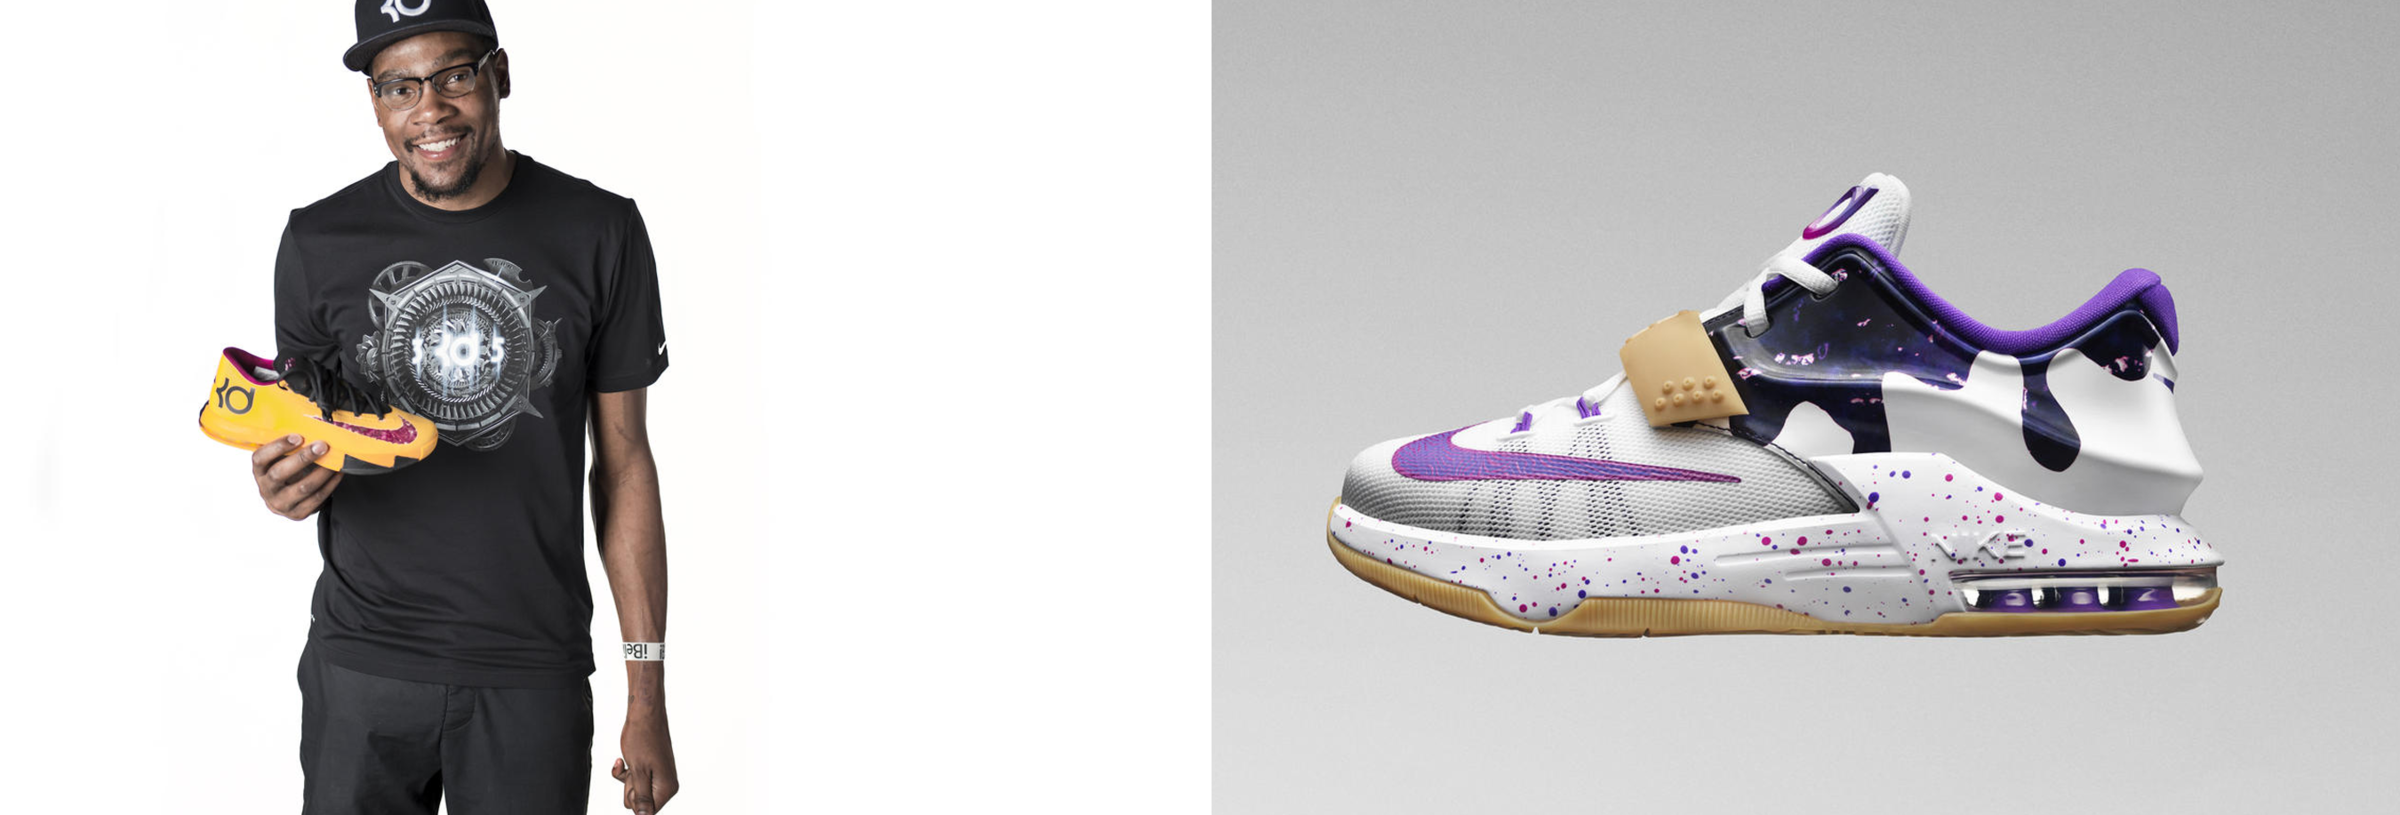 3ff65975b020 The NBA s culinary obsession has even permeated fashion  Nike created  the em  KD. View Slideshow 2 of 2